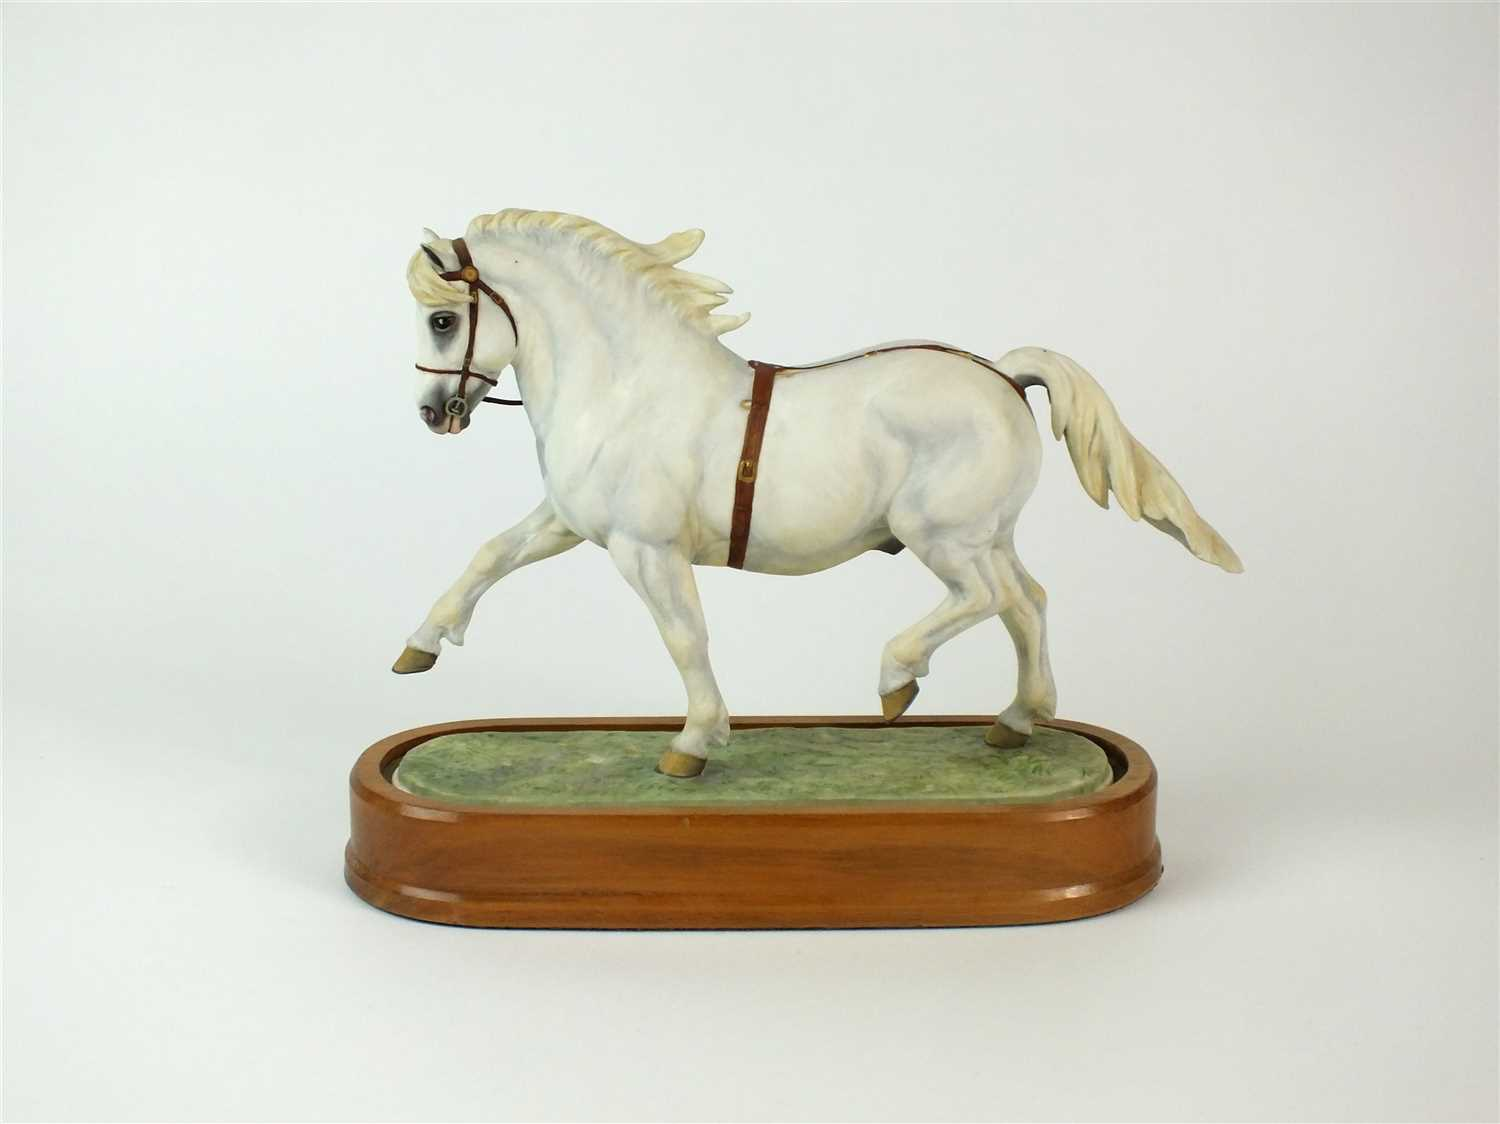 80 - A Royal Worcester model of a Welsh Mountain Pony